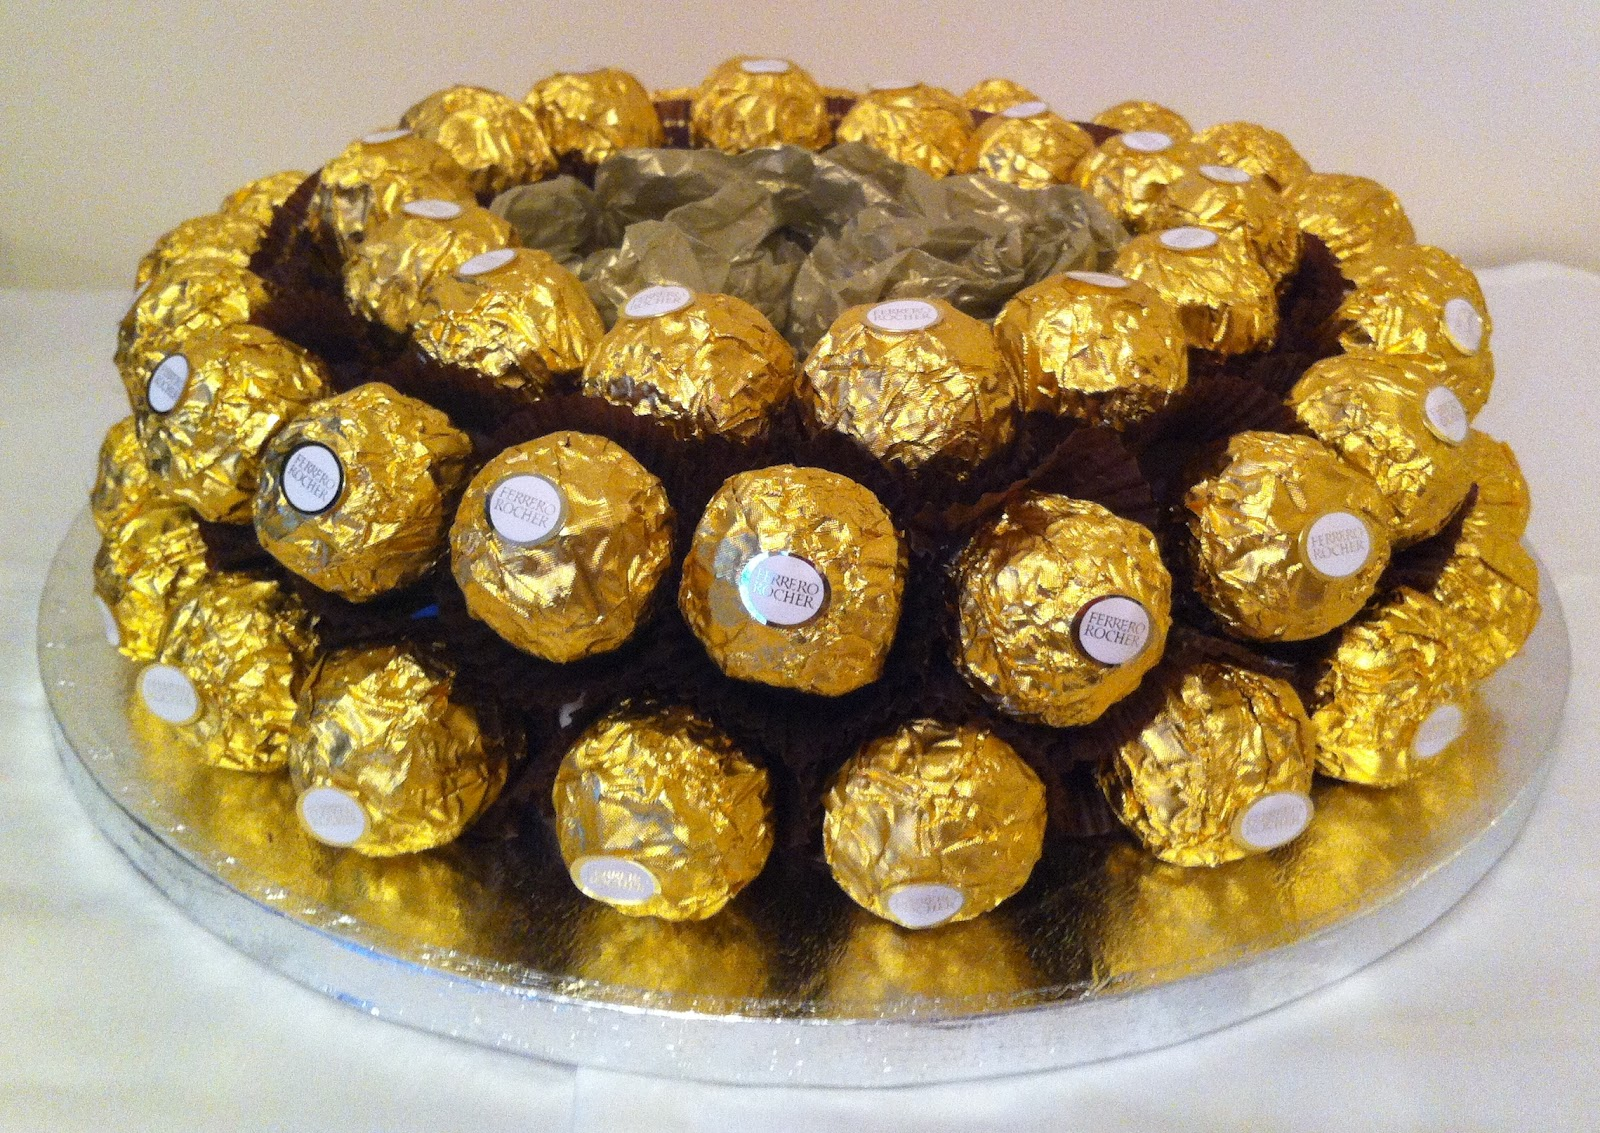 ferrero rocher essay The story of chocolate-hazelnut spread first begins with the story of gianduja and  italy's  pietro ferrero's first chocoalte store in piedmont (nutella usa)  a  chocolate renaisscance in mexico cityin final multimedia essay.